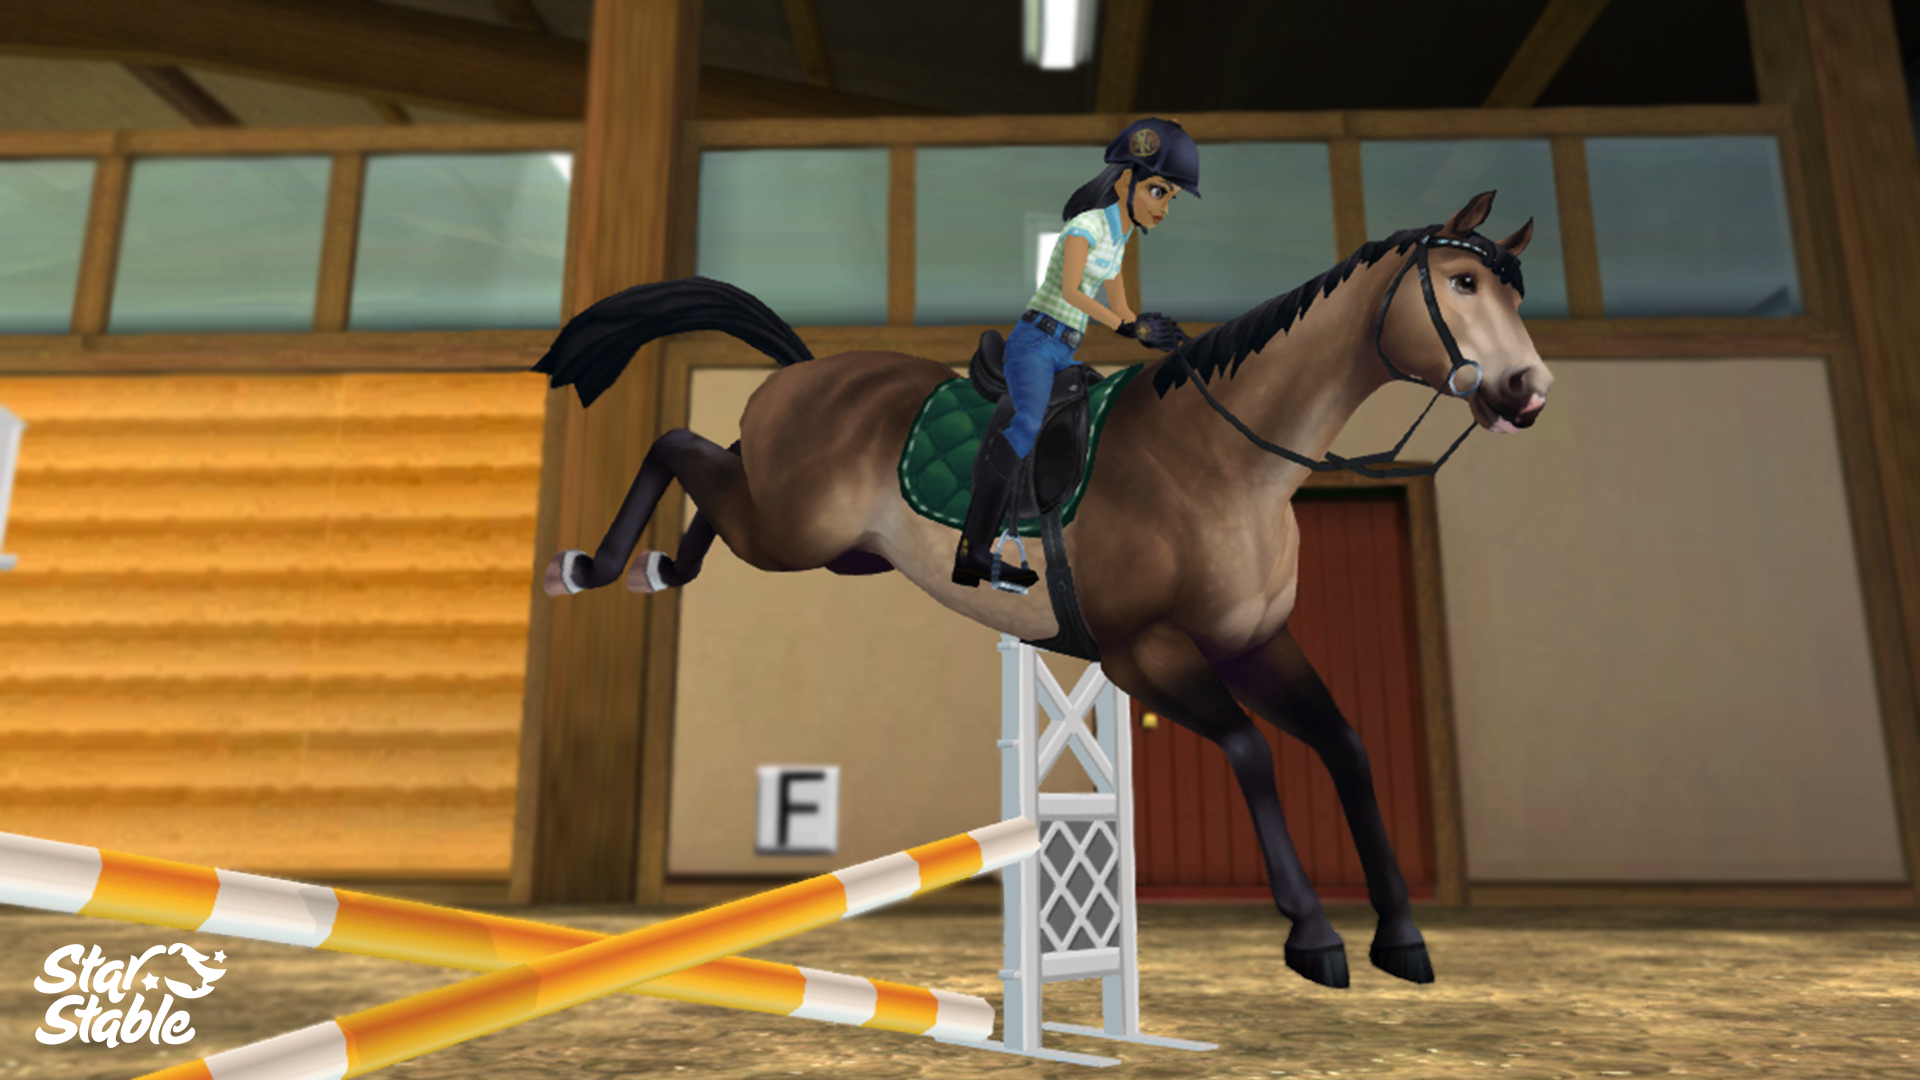 SSO features both real-life horse breeds and mundane tasks…